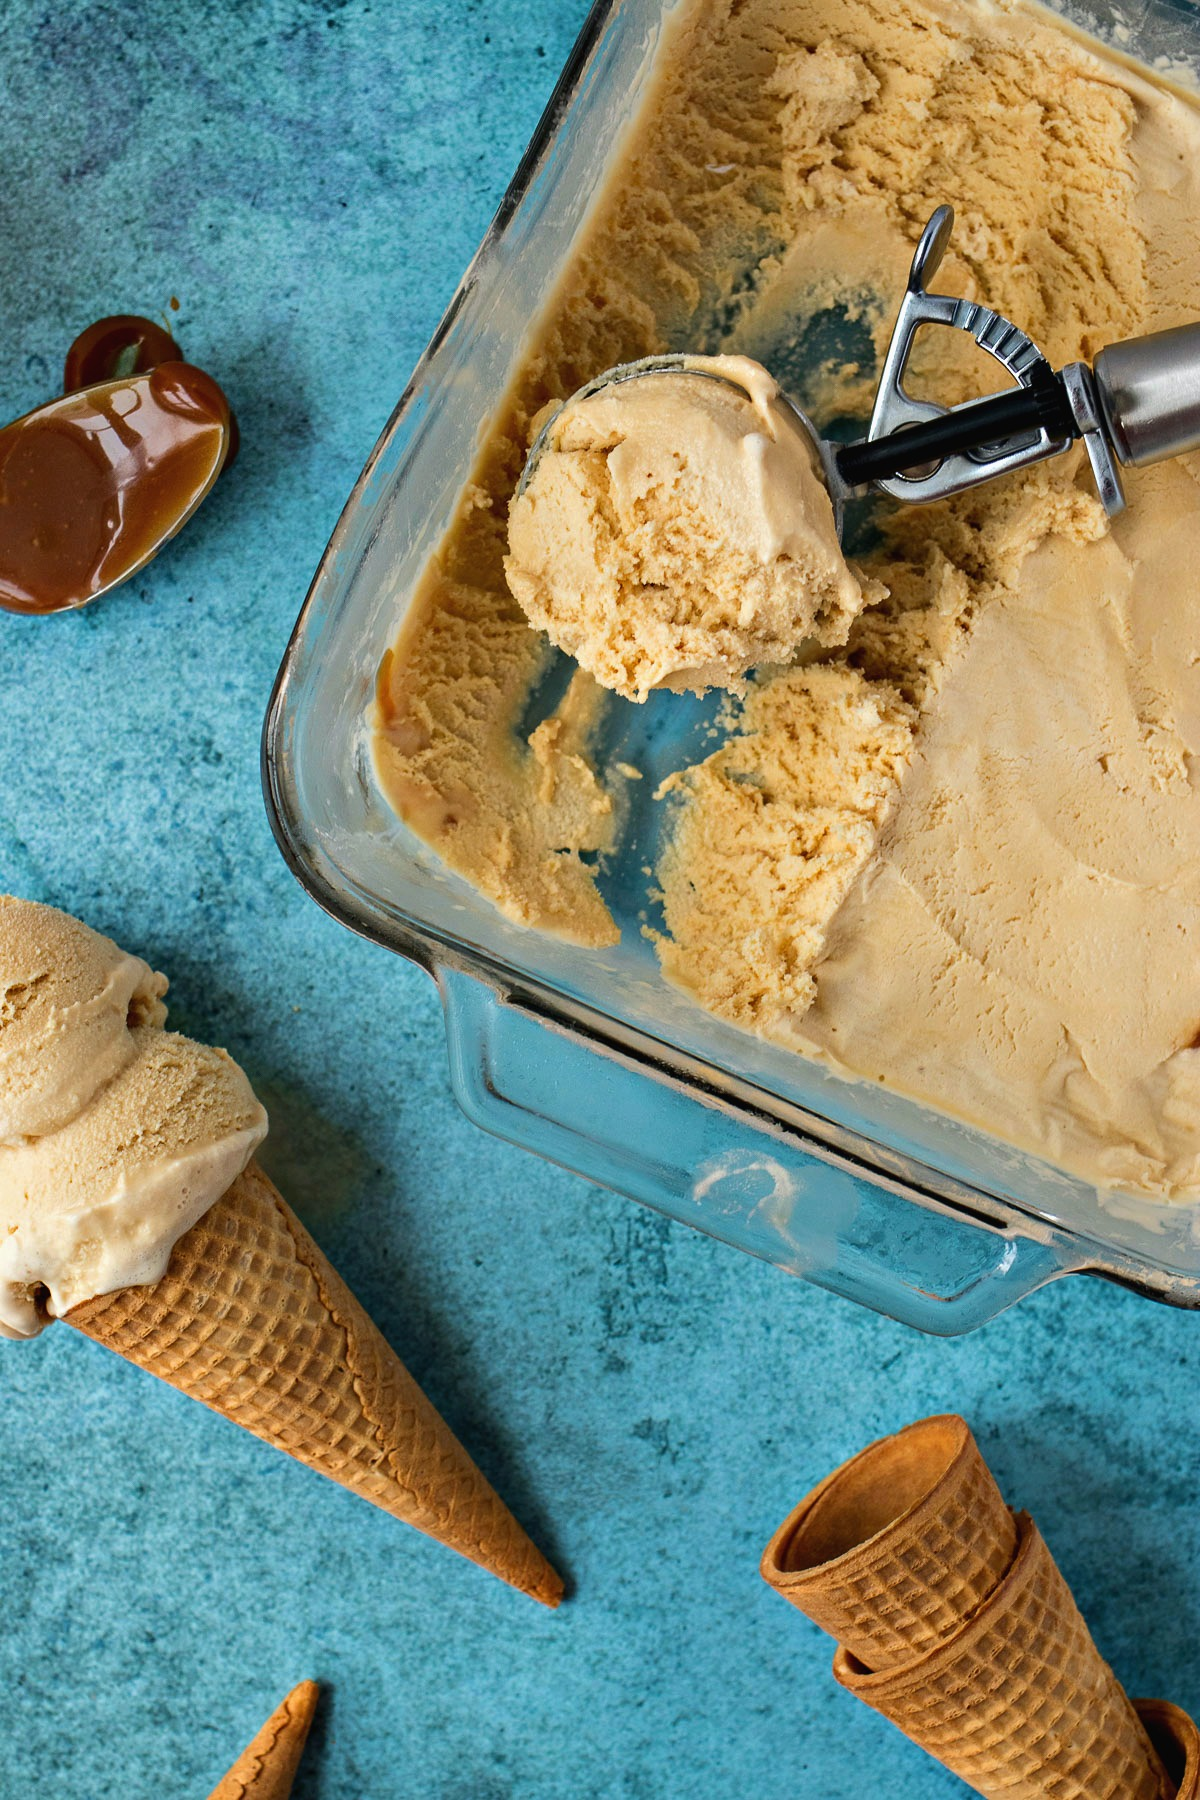 Cookie scoop scooping out Salted Caramel Ice Cream from a pan